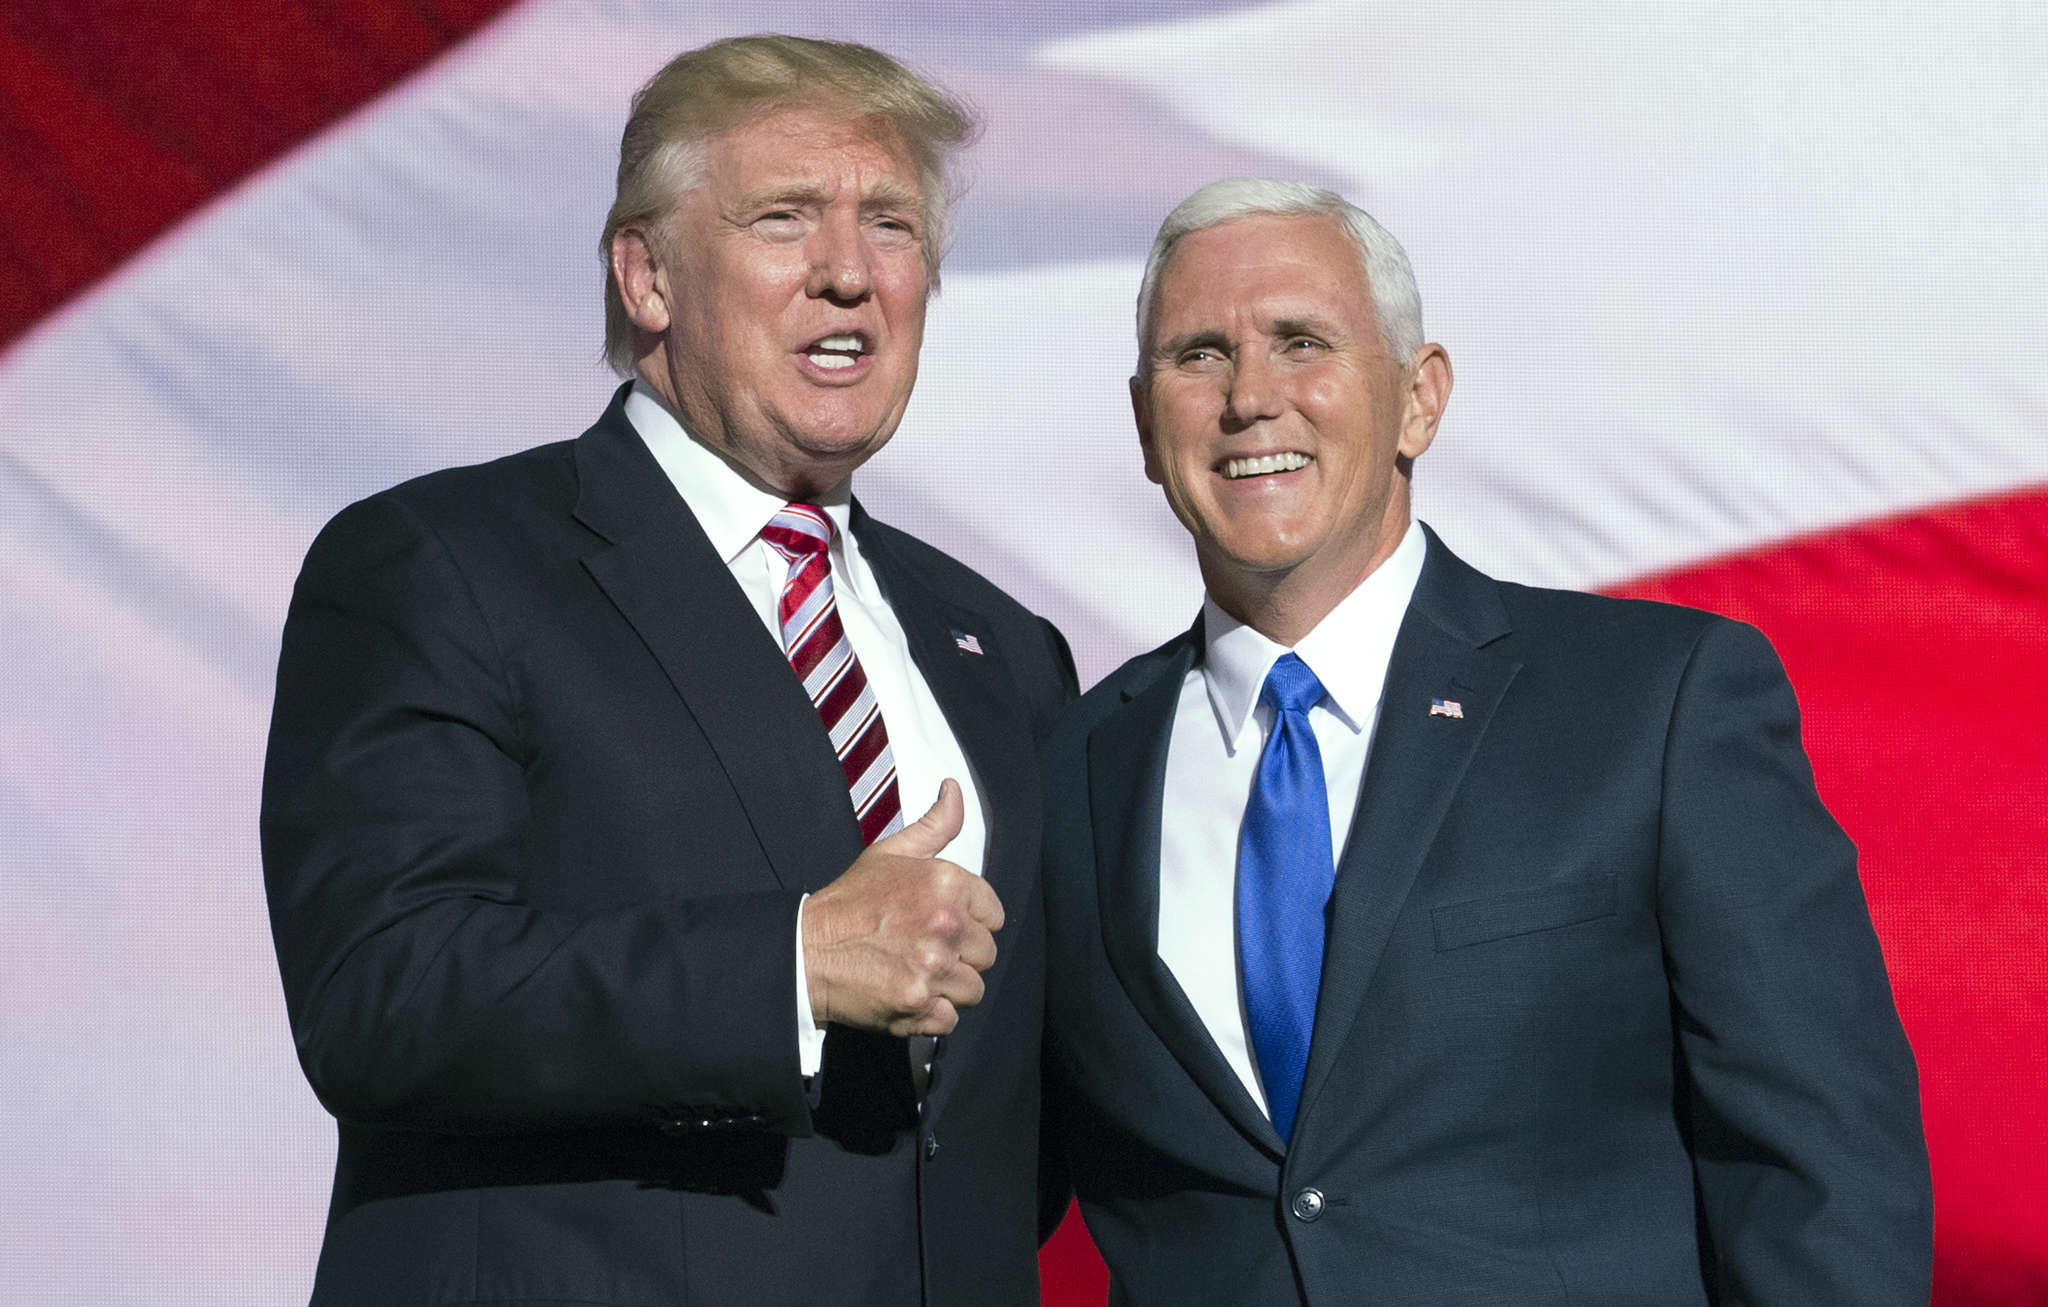 Donald Trump´s choice of Indiana Gov. Mike Pence could be a problem for donors under SEC anti-pay-to-play rules.